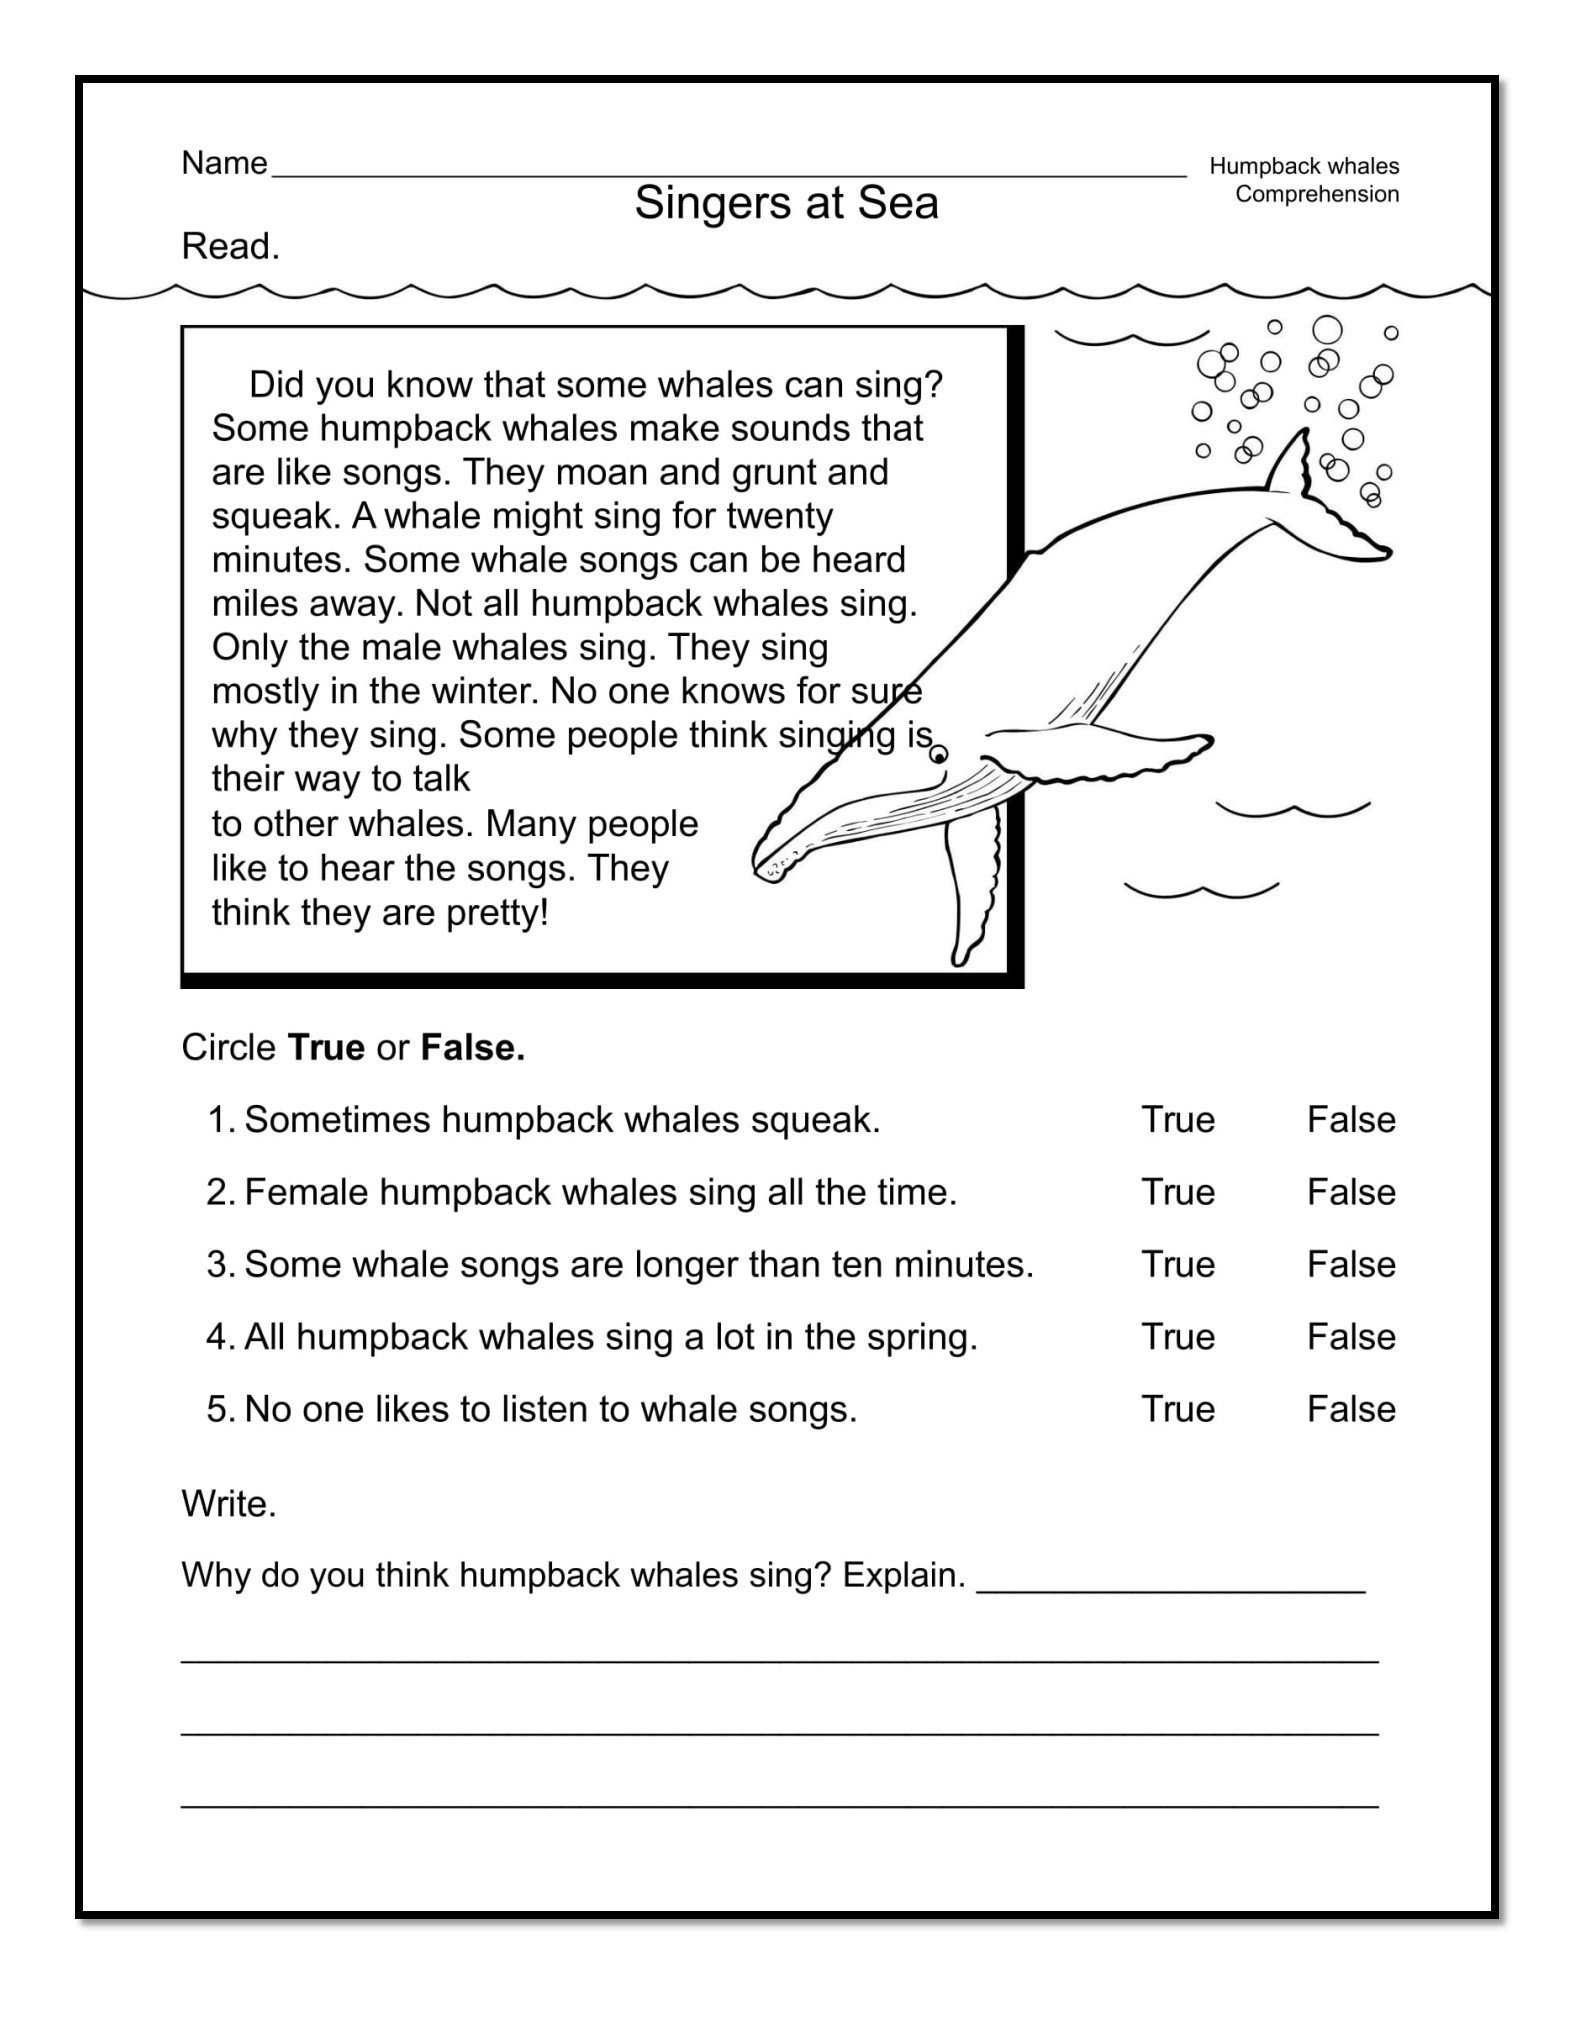 Free 1st Grade Comprehension Worksheets Good Examples 1st Grade Worksheets Free Download